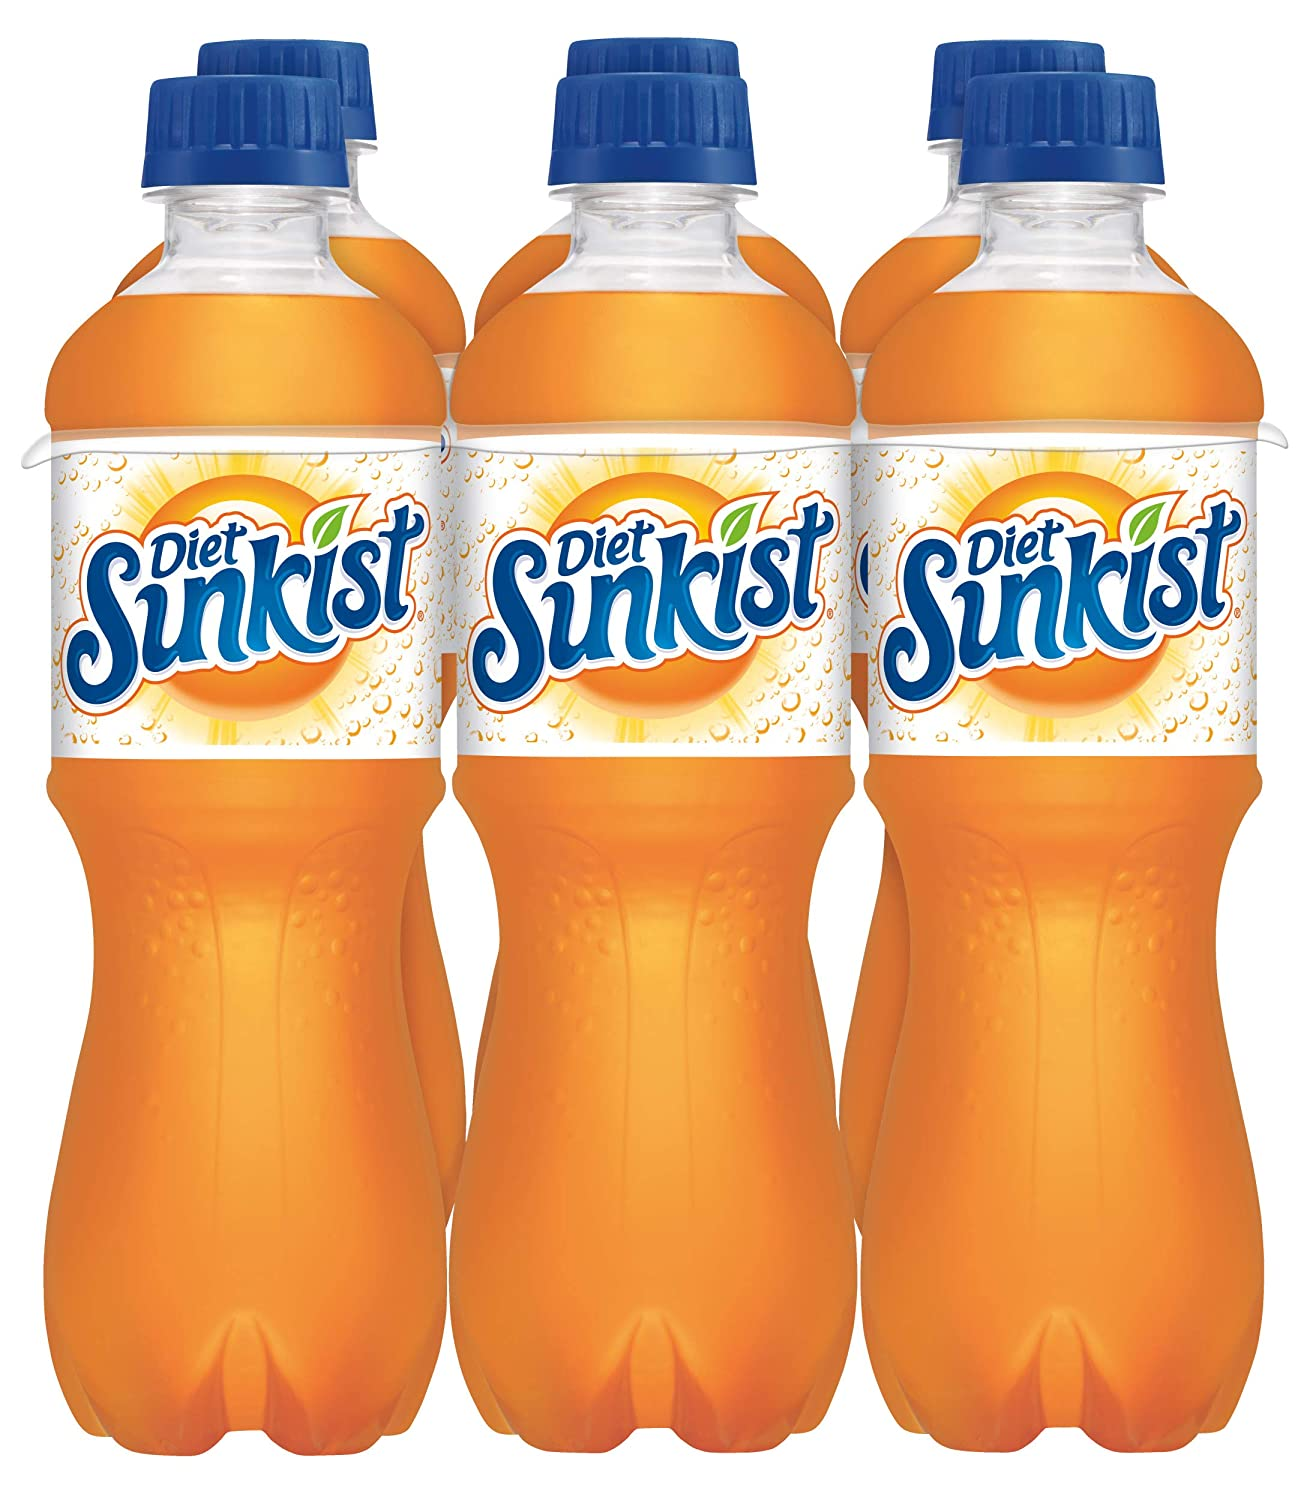 why cant i find diet sunkist